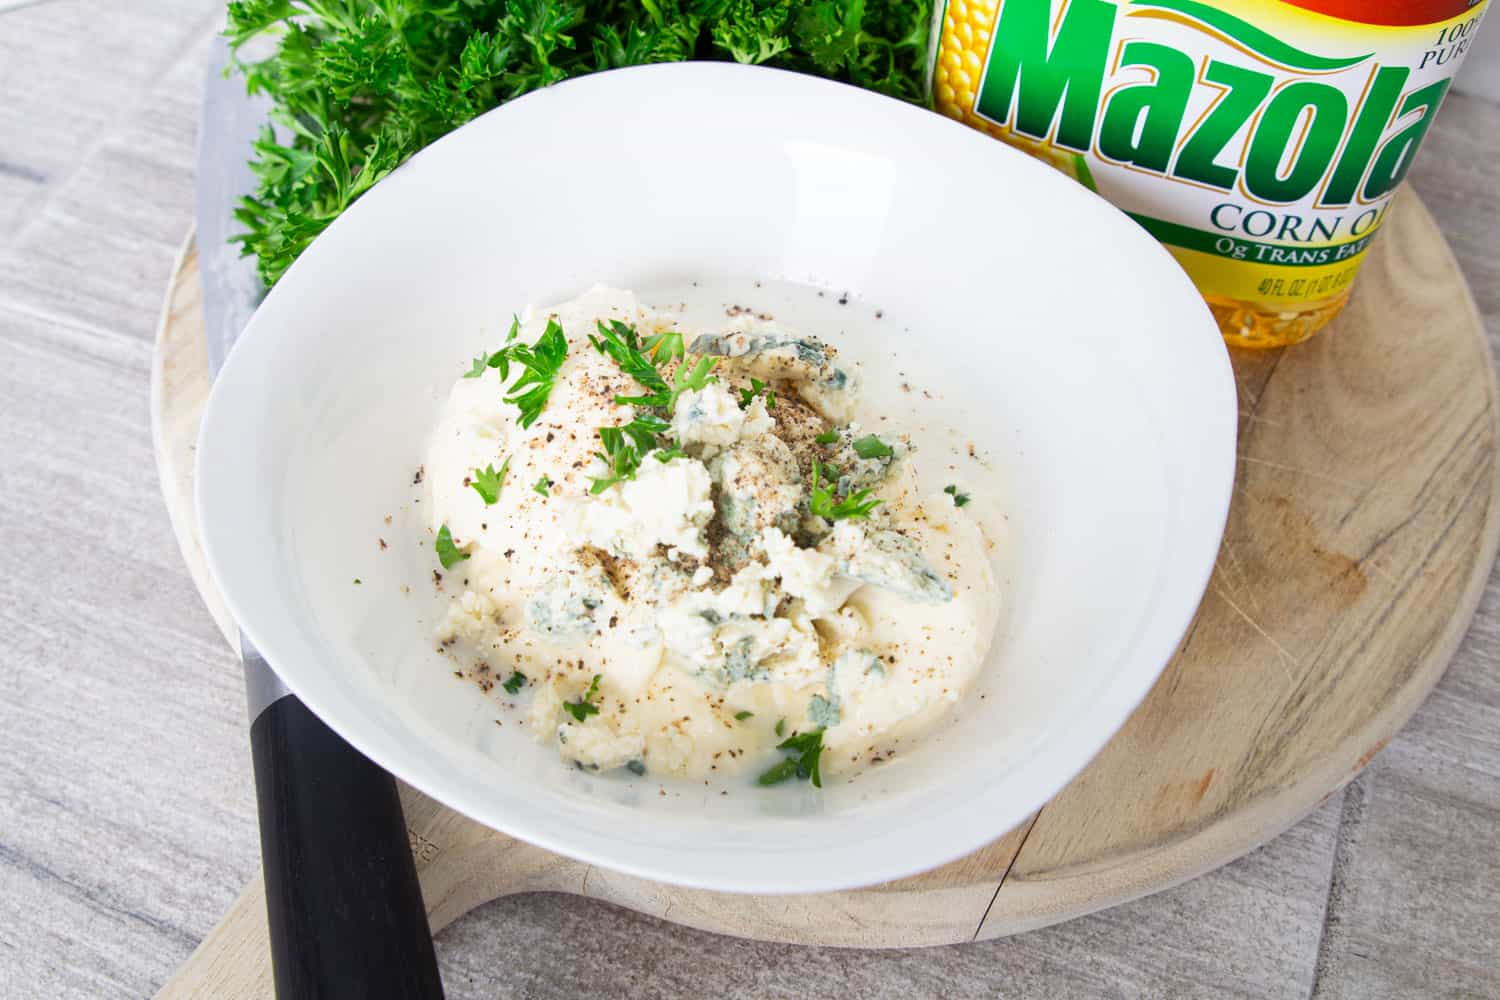 A bowl of homemade blue cheese dressing ingredients: mayonnaise, blue cheese, garlic, milk, and fresh herbs